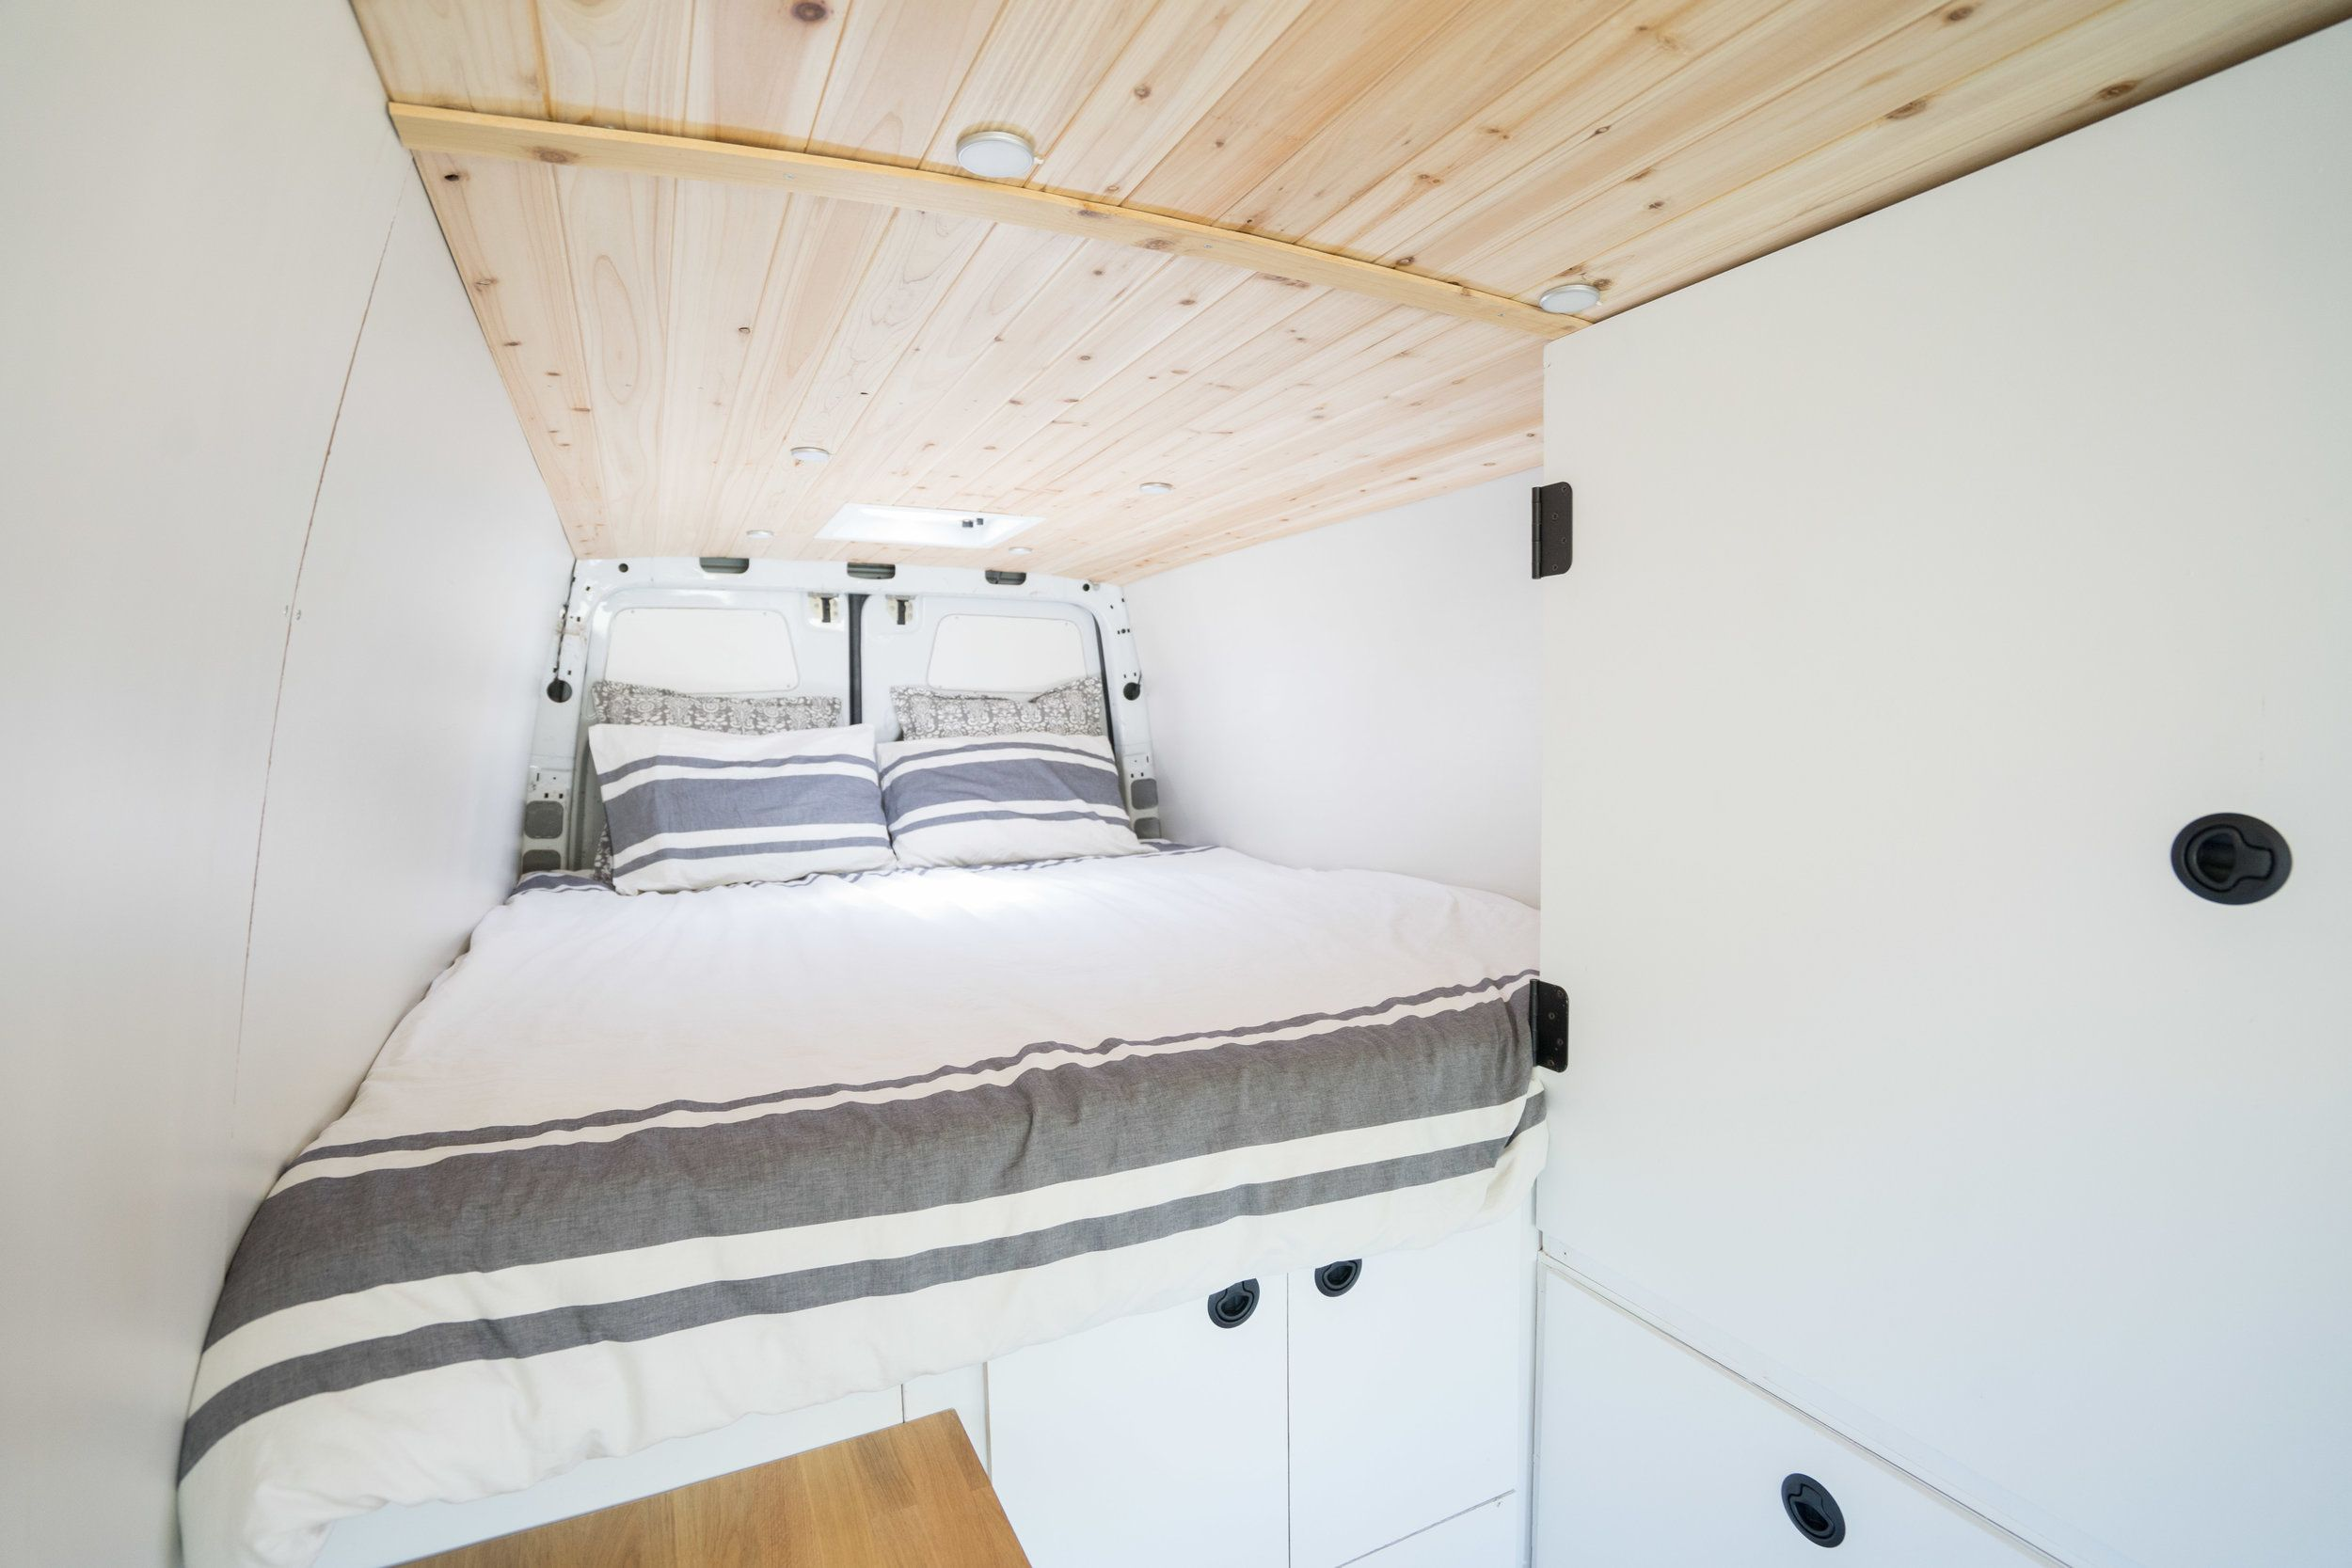 2008 Dodge Sprinter 170 With Images Home Diy Travel